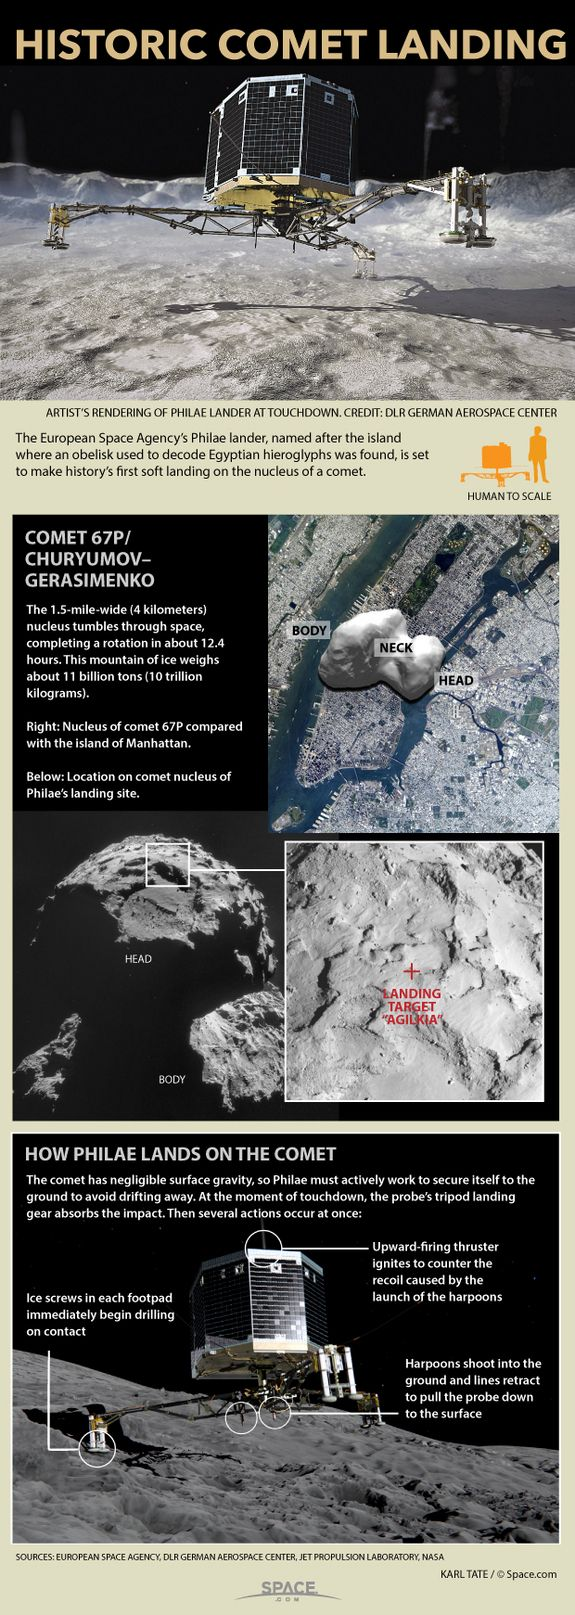 More #CometLanding: Diagrams show how lander touches down on a comet nucleus. (Via space.com)